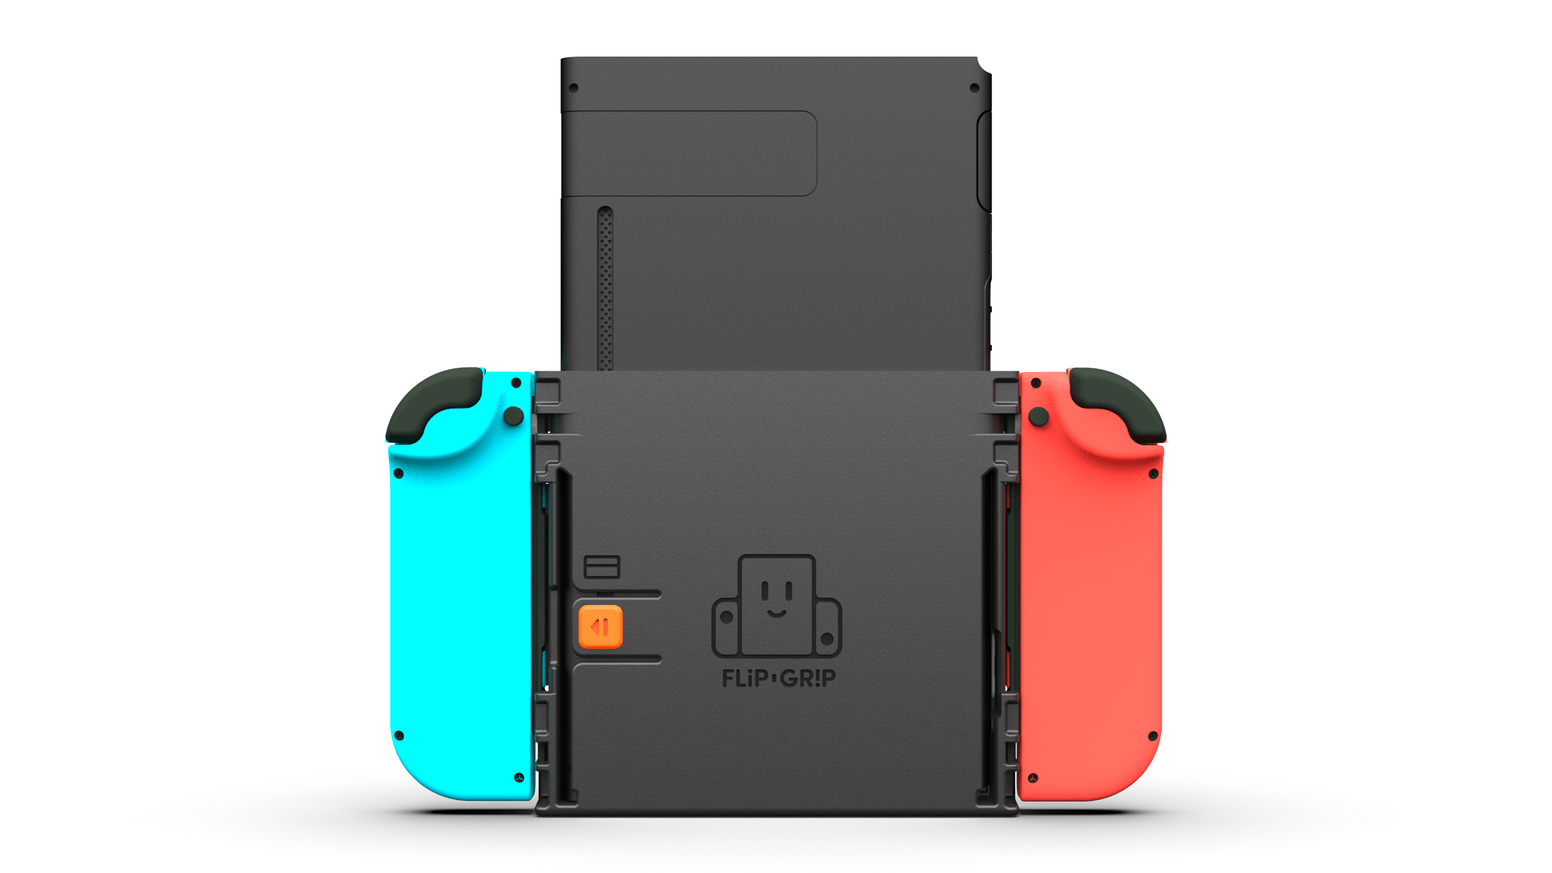 Improve Your Vertical Nintendo Switch Gaming With The Flip Grip